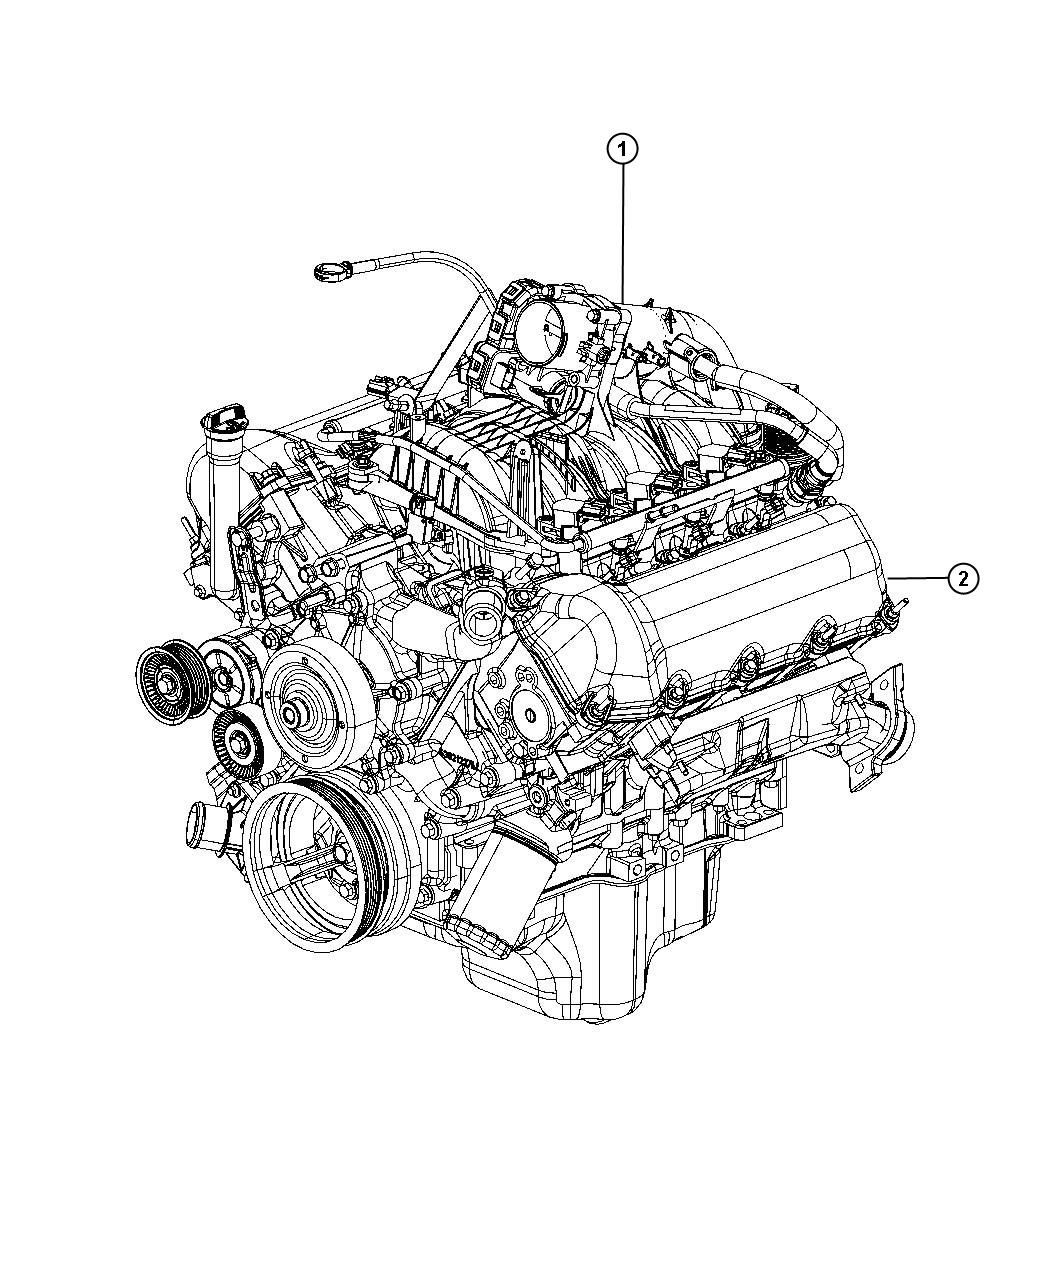 Dodge Dakota Engine Long Block Remanufactured Service